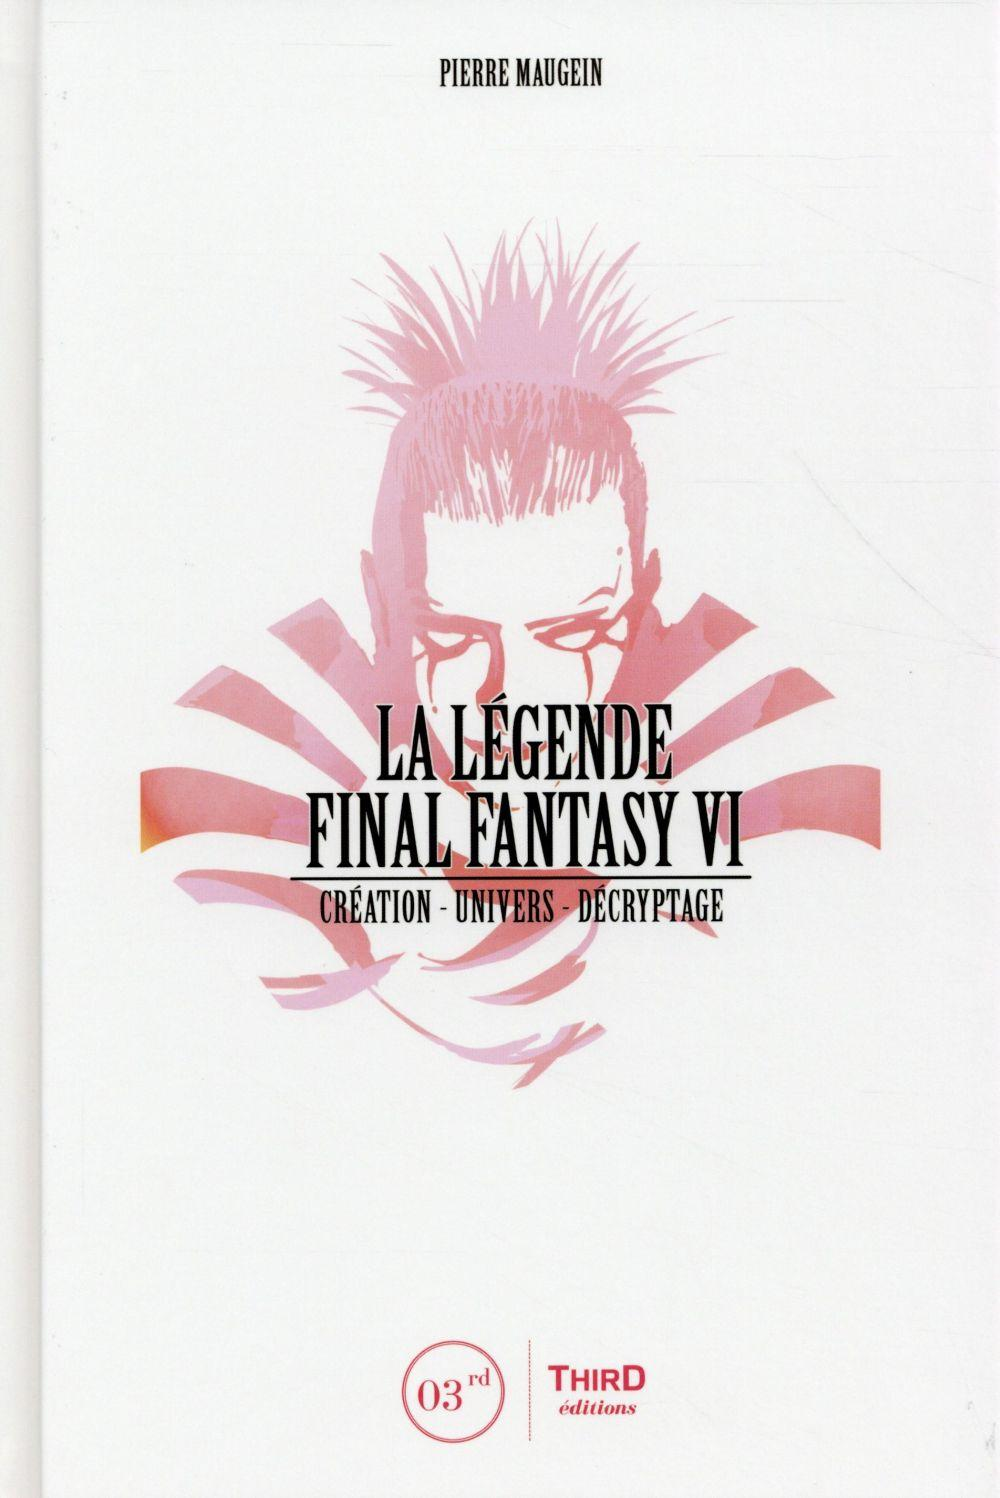 La légende final fantasy VI  - Pierre Maugein